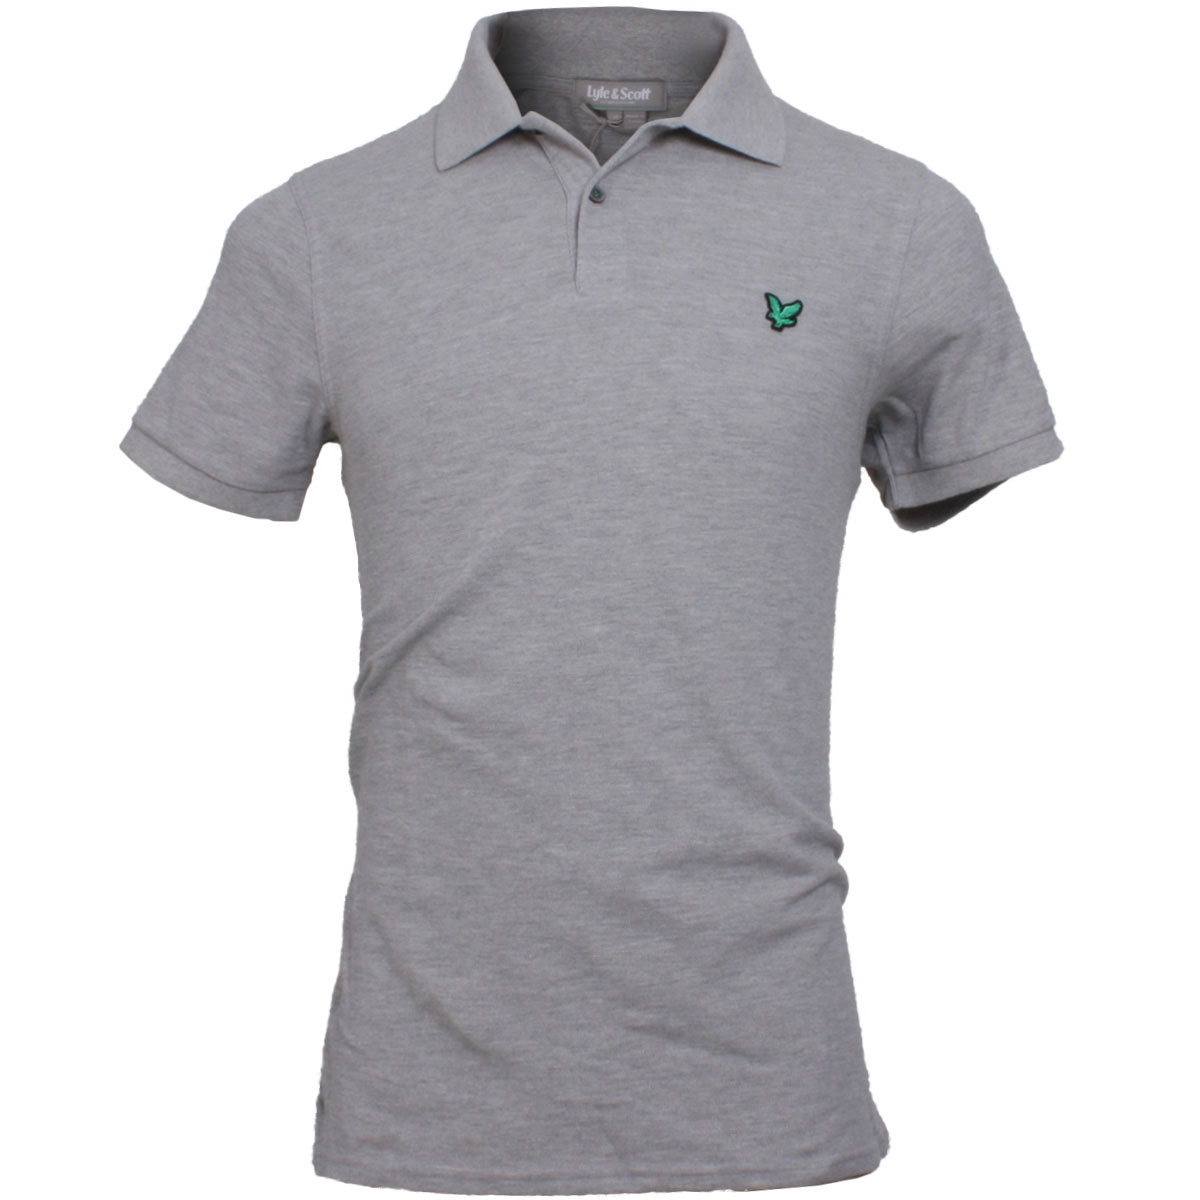 lyle scott mens green eagle kb675 club cotton golf polo shirt ebay. Black Bedroom Furniture Sets. Home Design Ideas